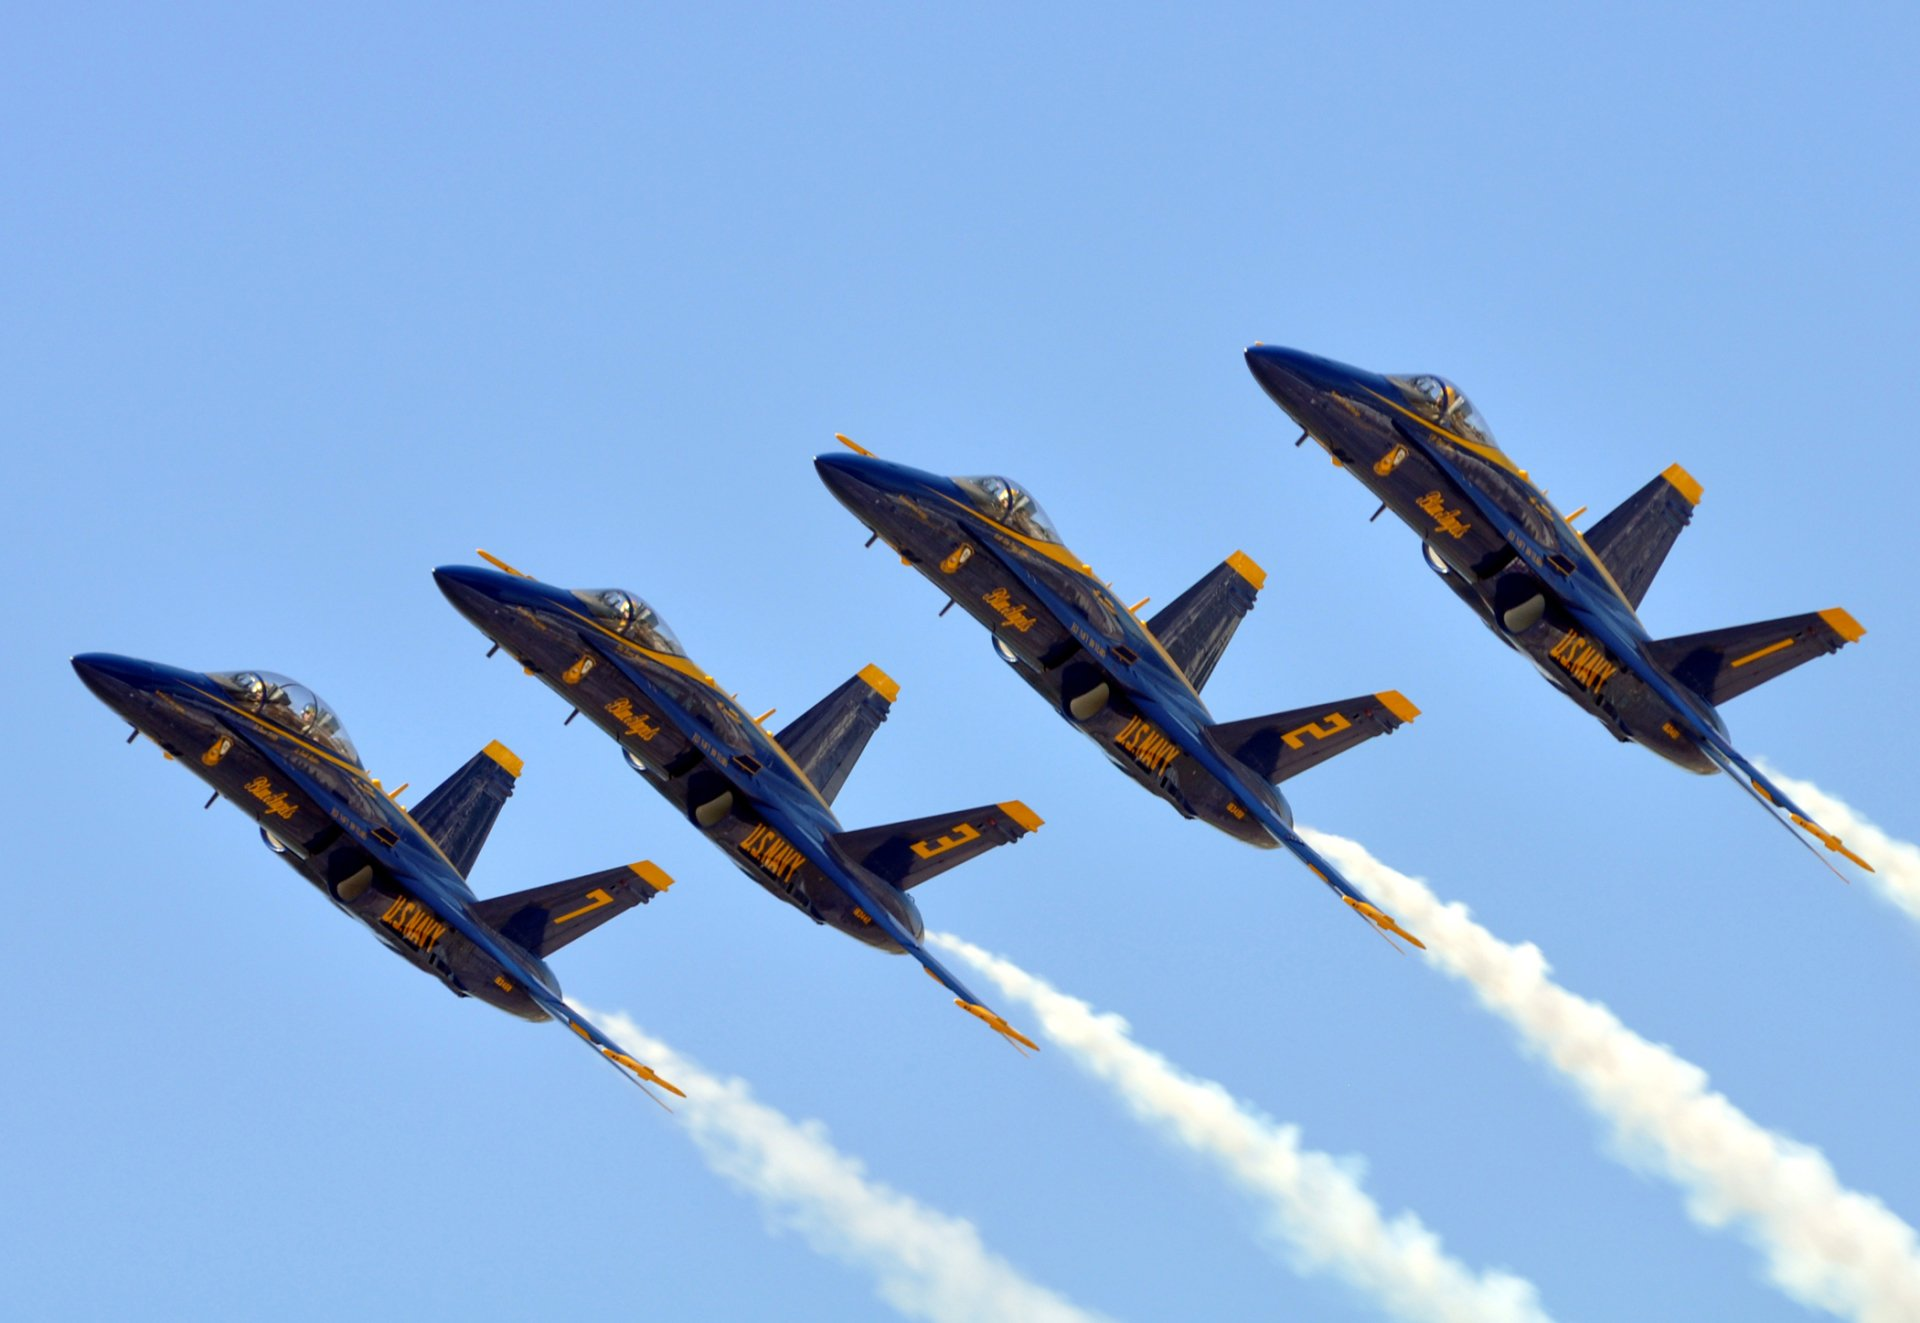 Military - Air Show  Blue Angels Aircraft Navy Military McDonnell Douglas F/A-18 Hornet Airplane Smoke Wallpaper